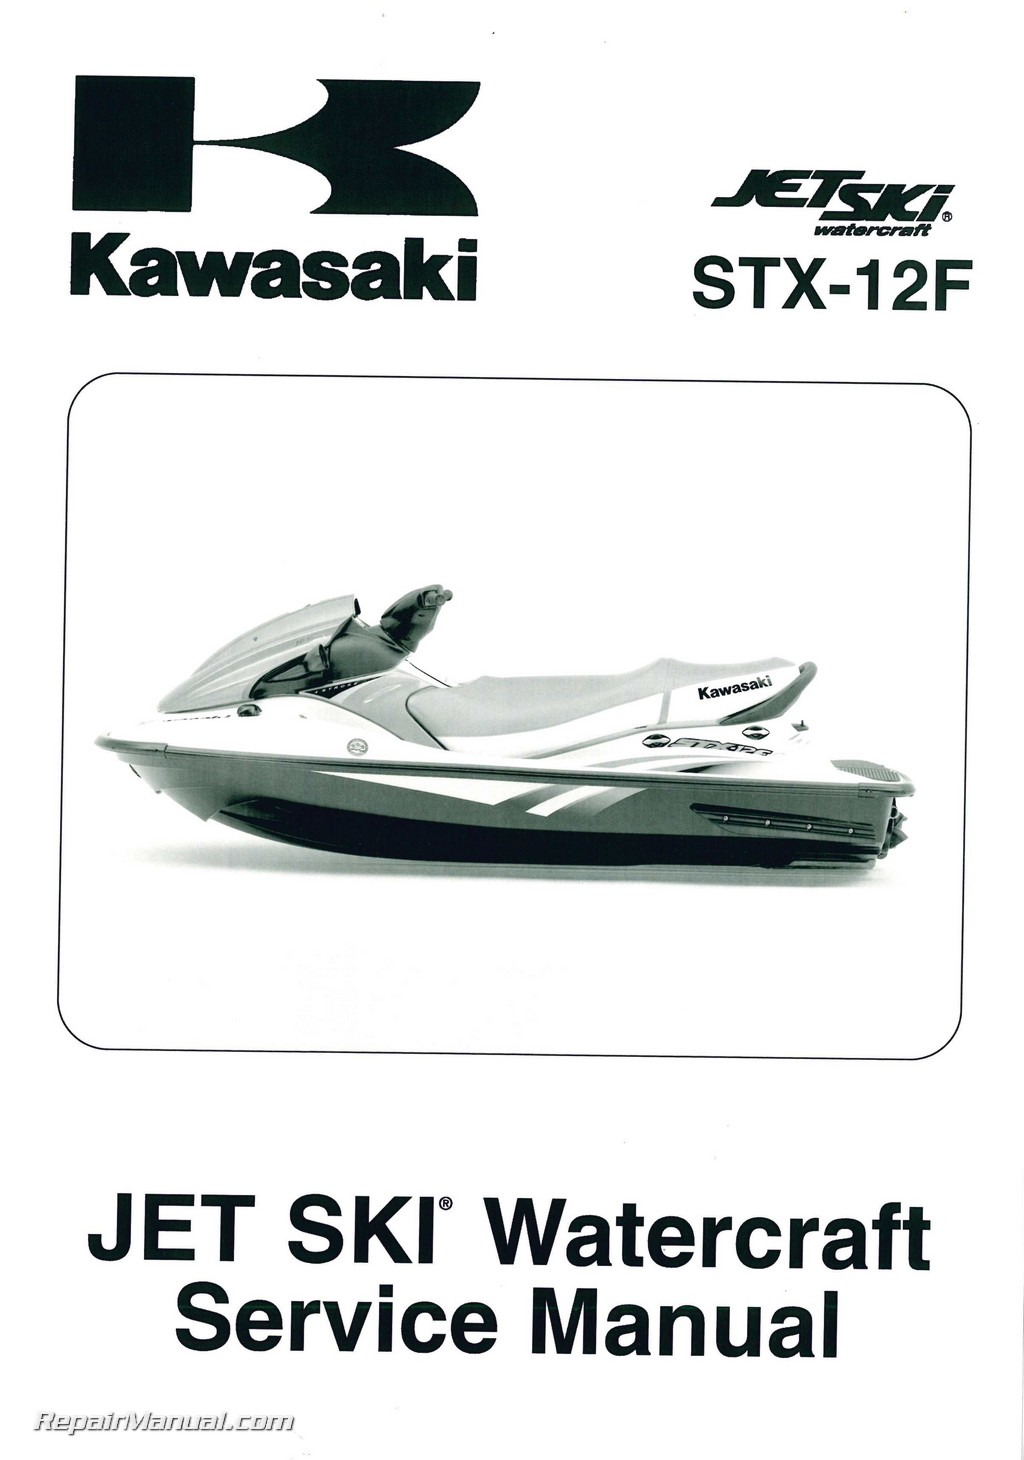 kawasaki jet ski watercraft service manual stx 12f jt1200 2005 2006 2007 rh  repairmanual com tiger shark jet ski repair manual honda jet ski repair  manual